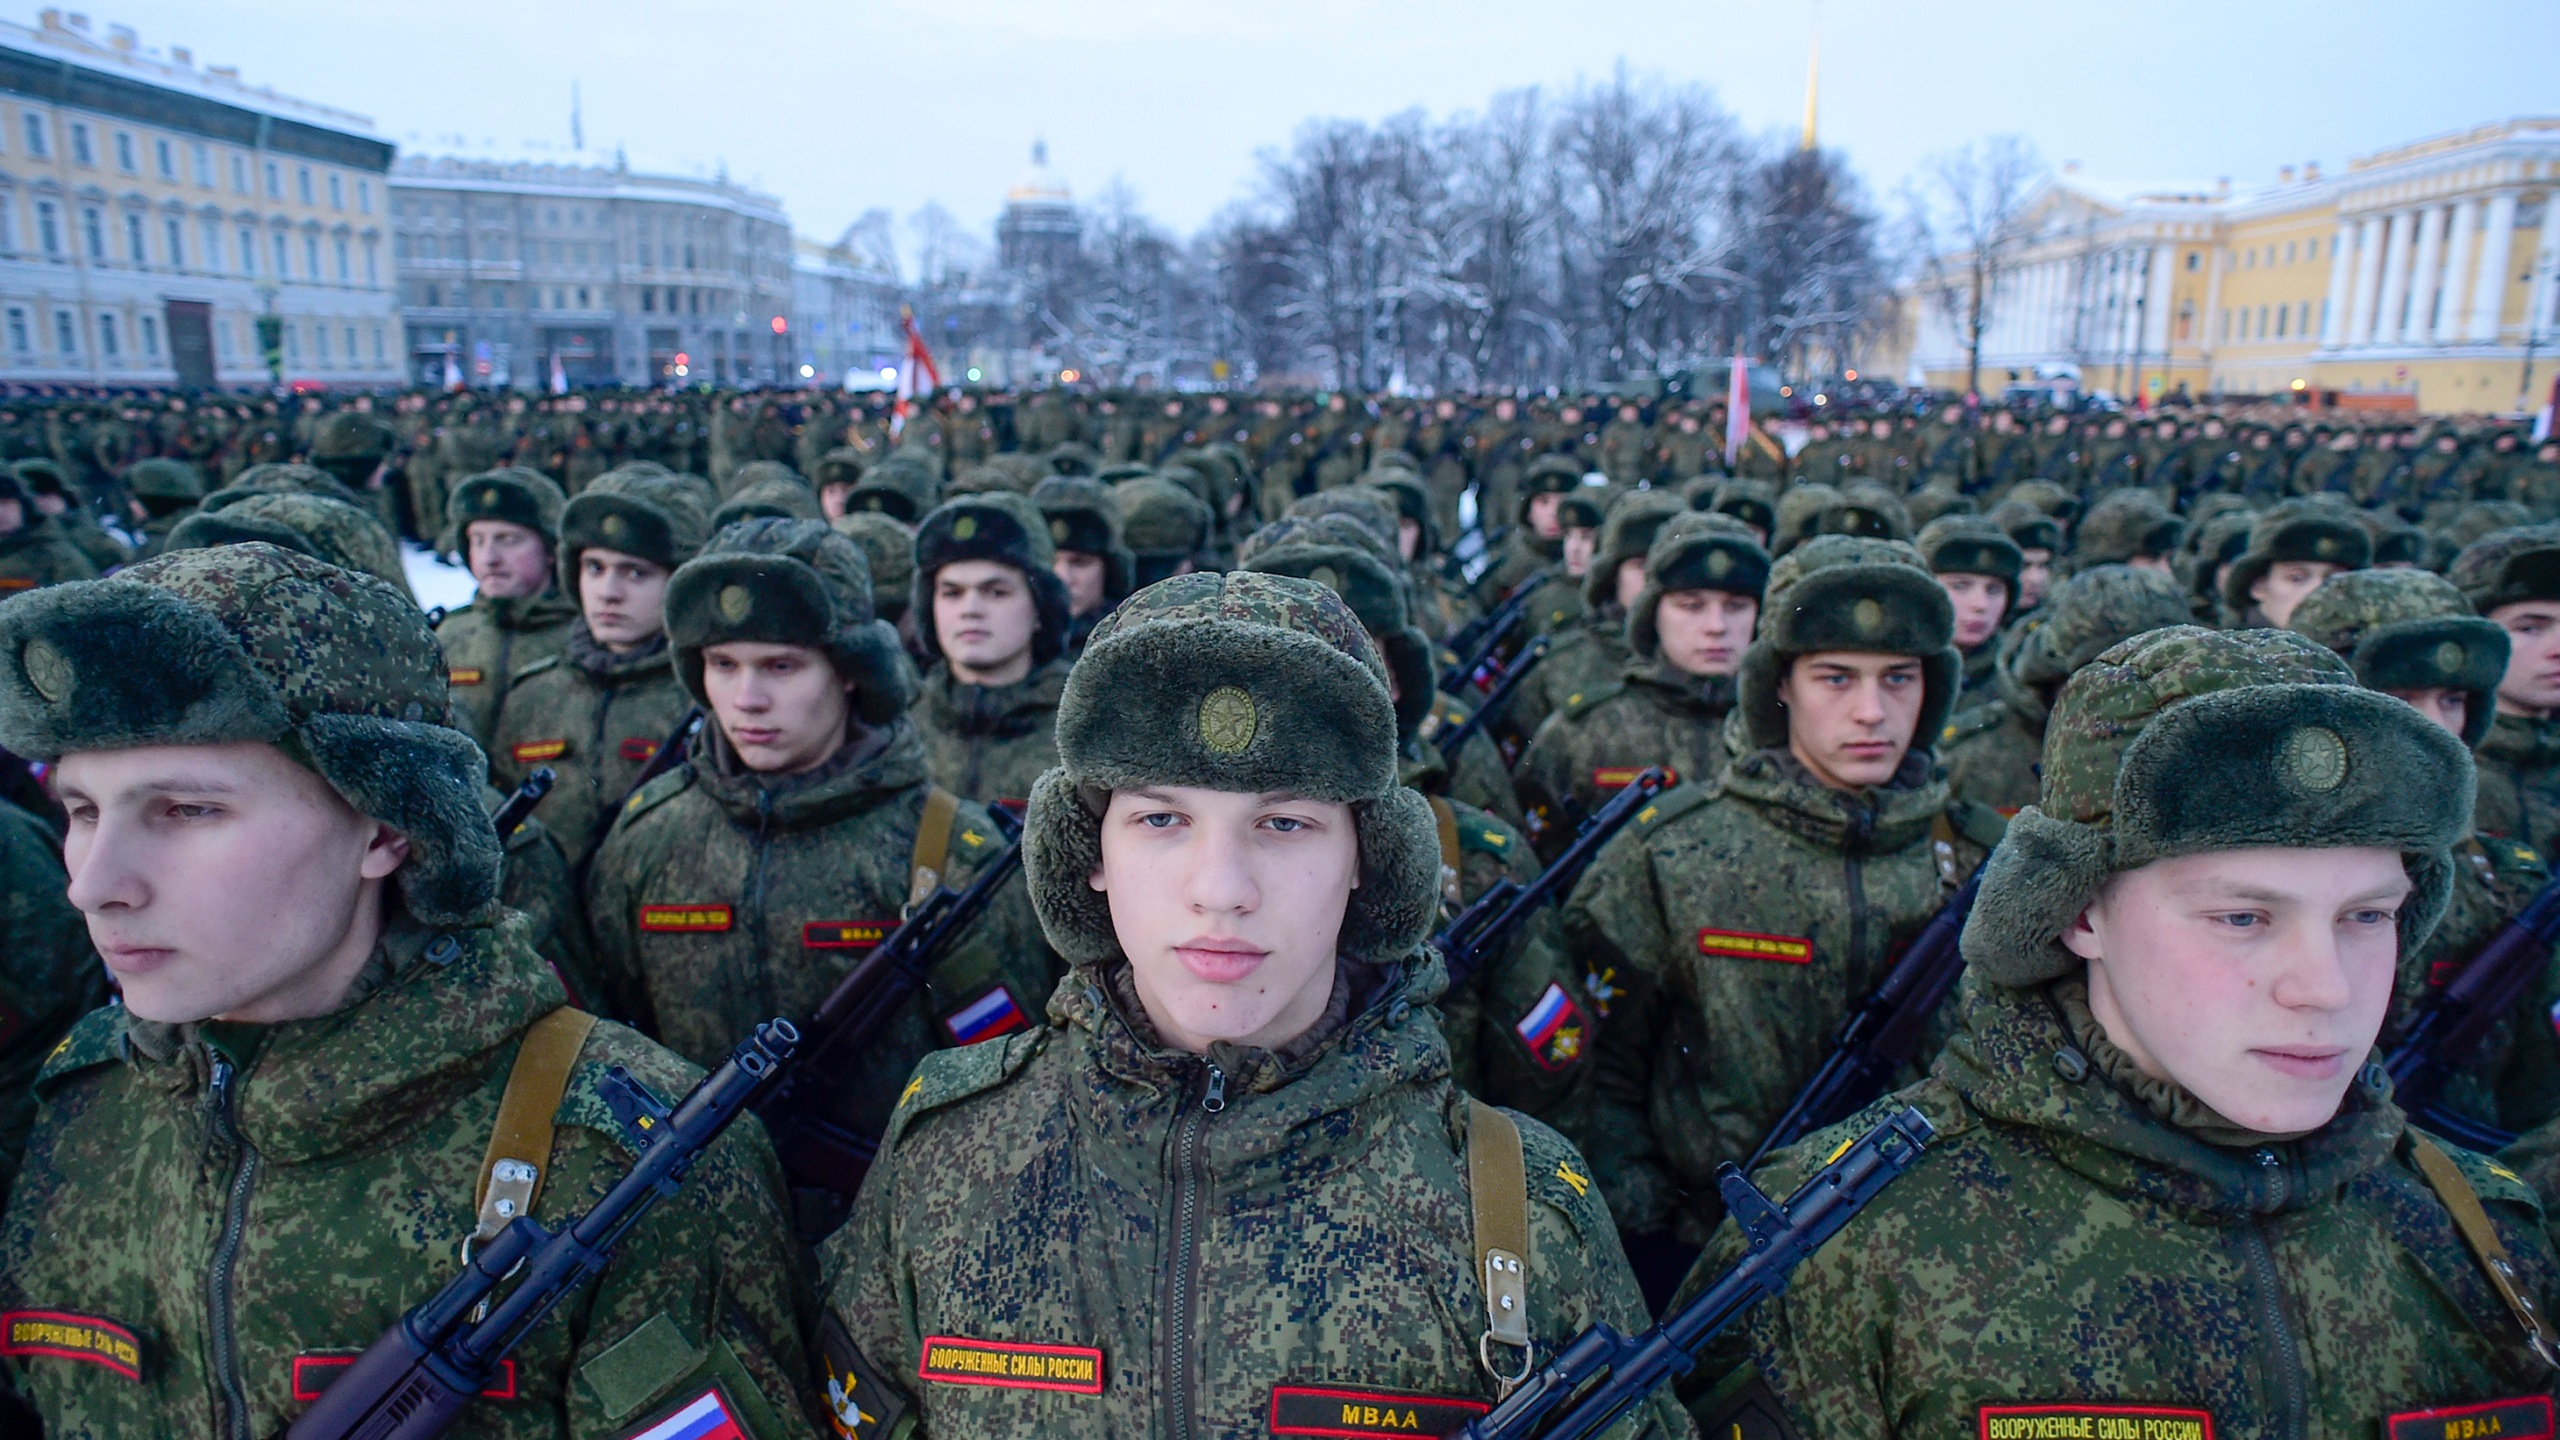 Russian servicemen march during the military parade marking the 75th anniversary of the lifting of the Nazi siege of Leningrad, at Dvortsovaya Square in Saint Petersburg on January 27, 2019. (Credit: OLGA MALTSEVA/AFP/Getty Images)